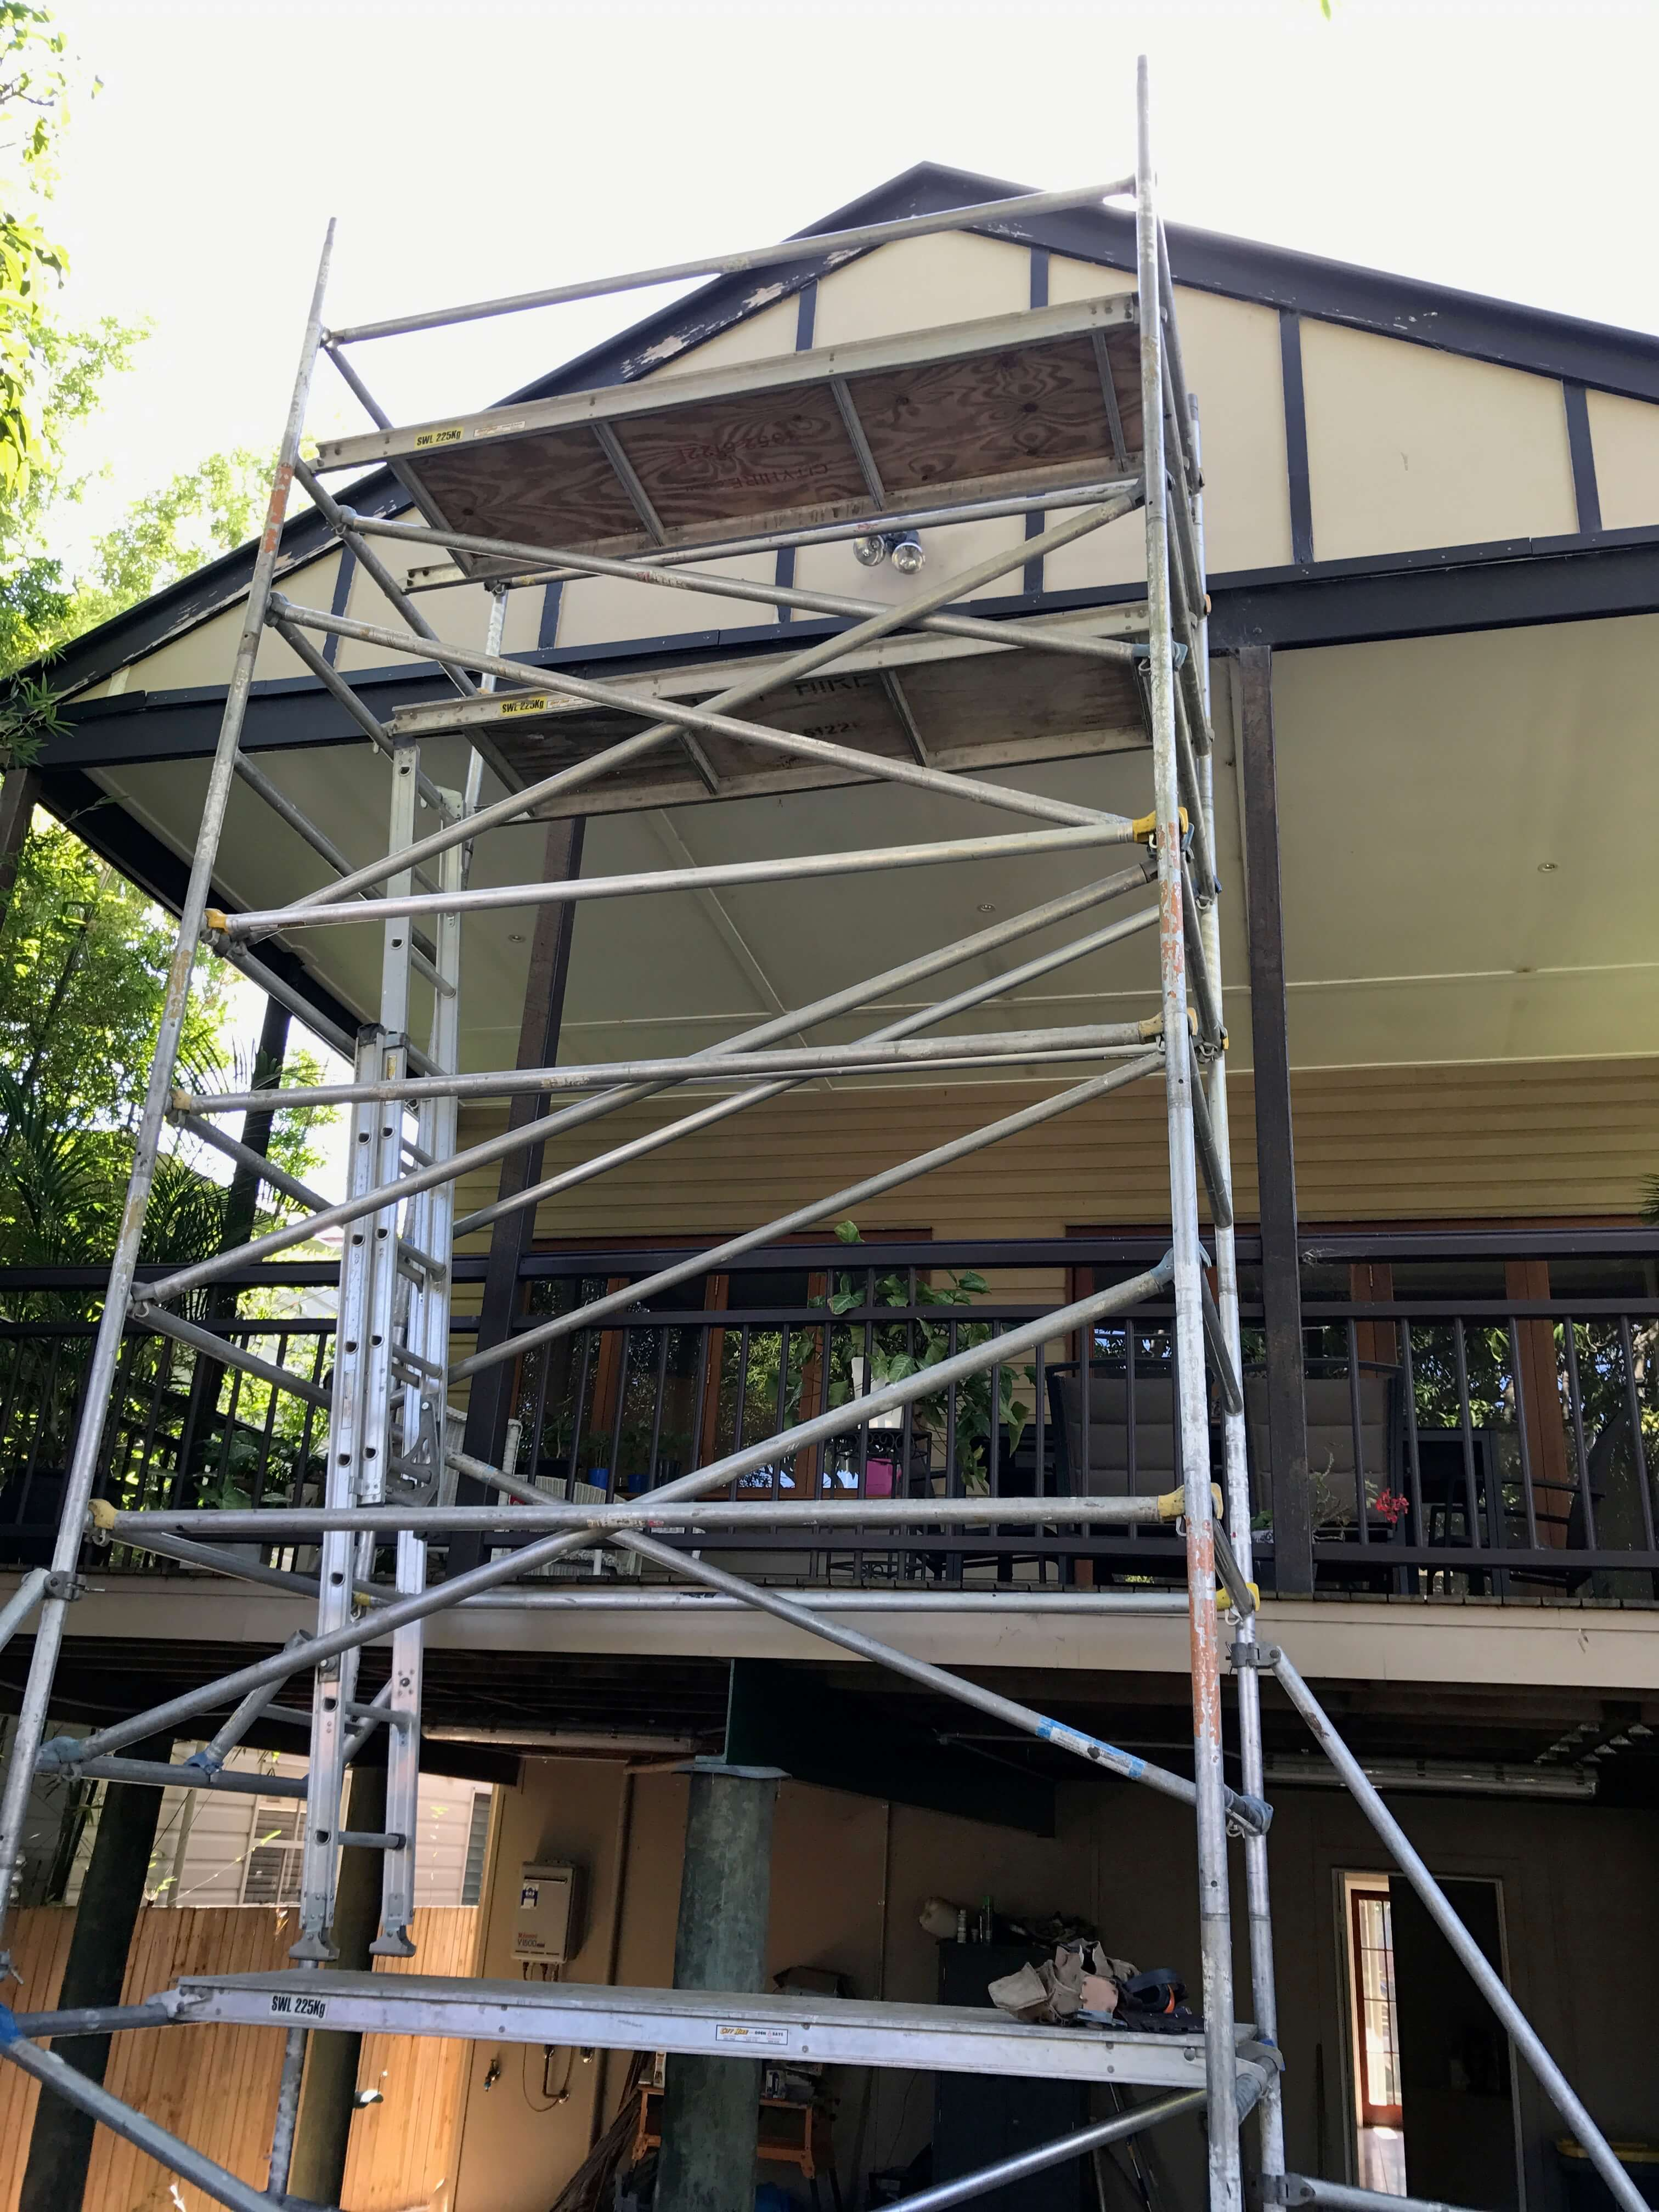 mewald building scaffolding on back of home in renovations